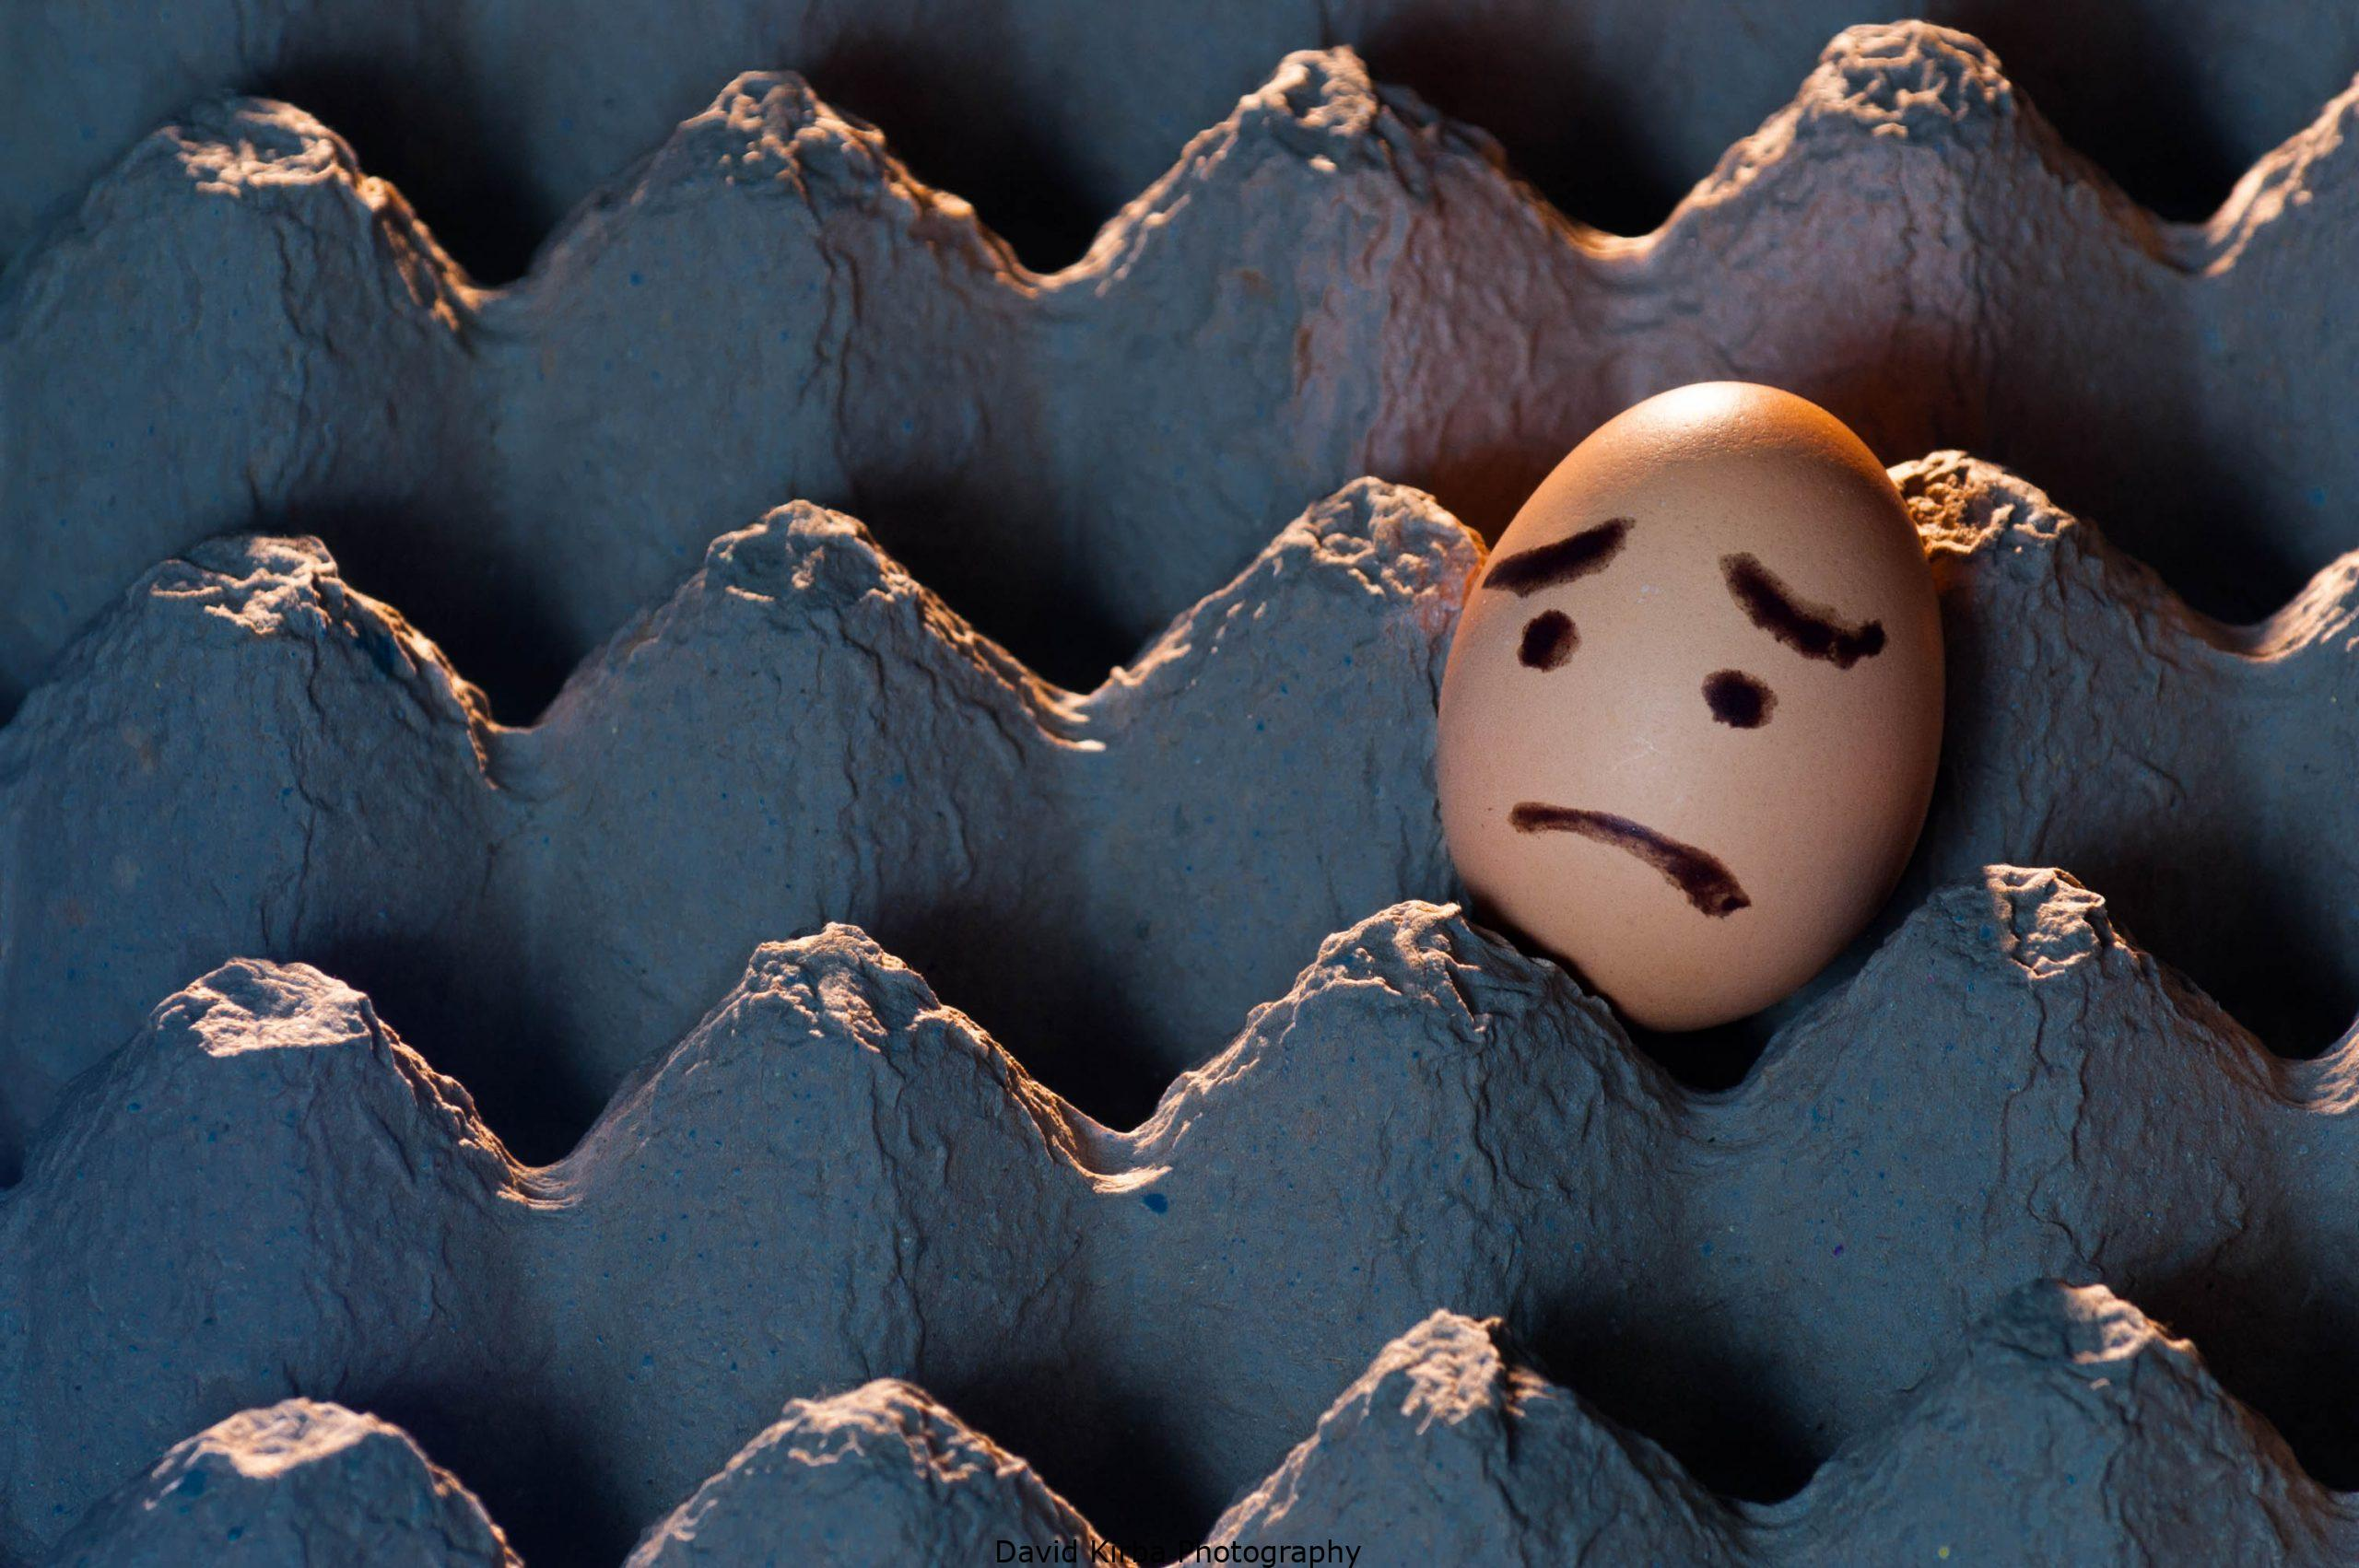 Sad Faced Egg in Egg Tray